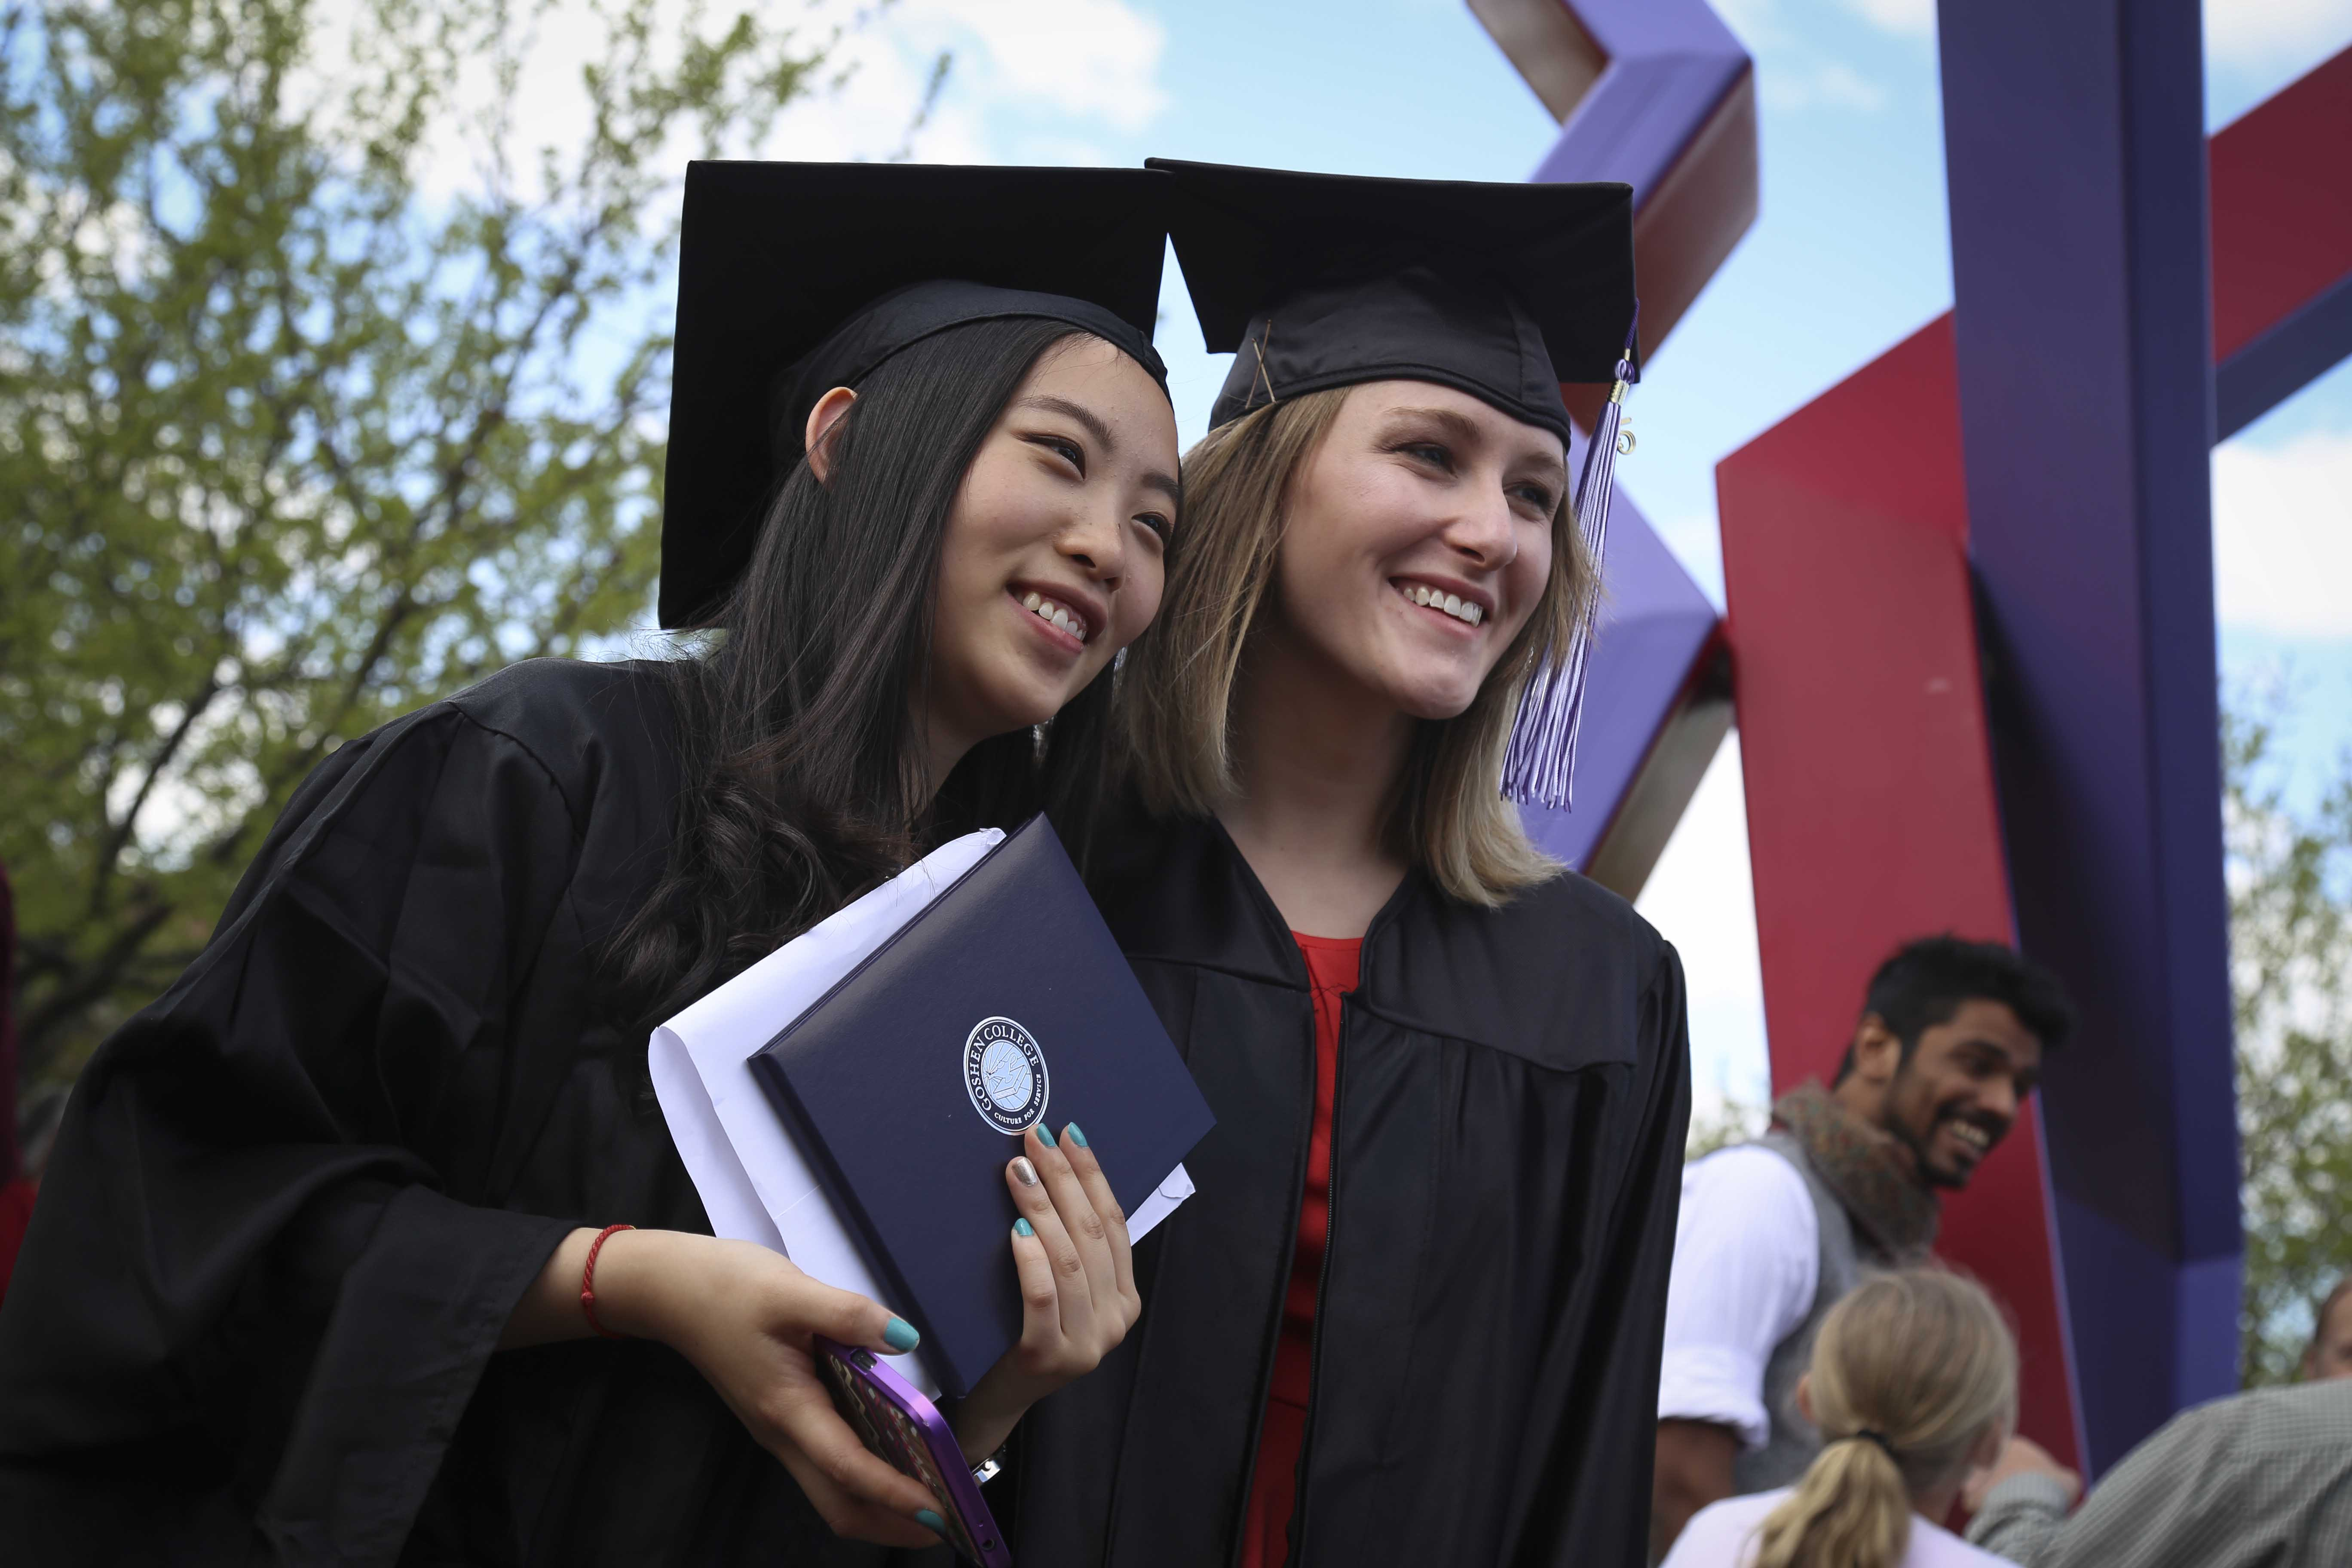 us news best colleges - HD5040×3432